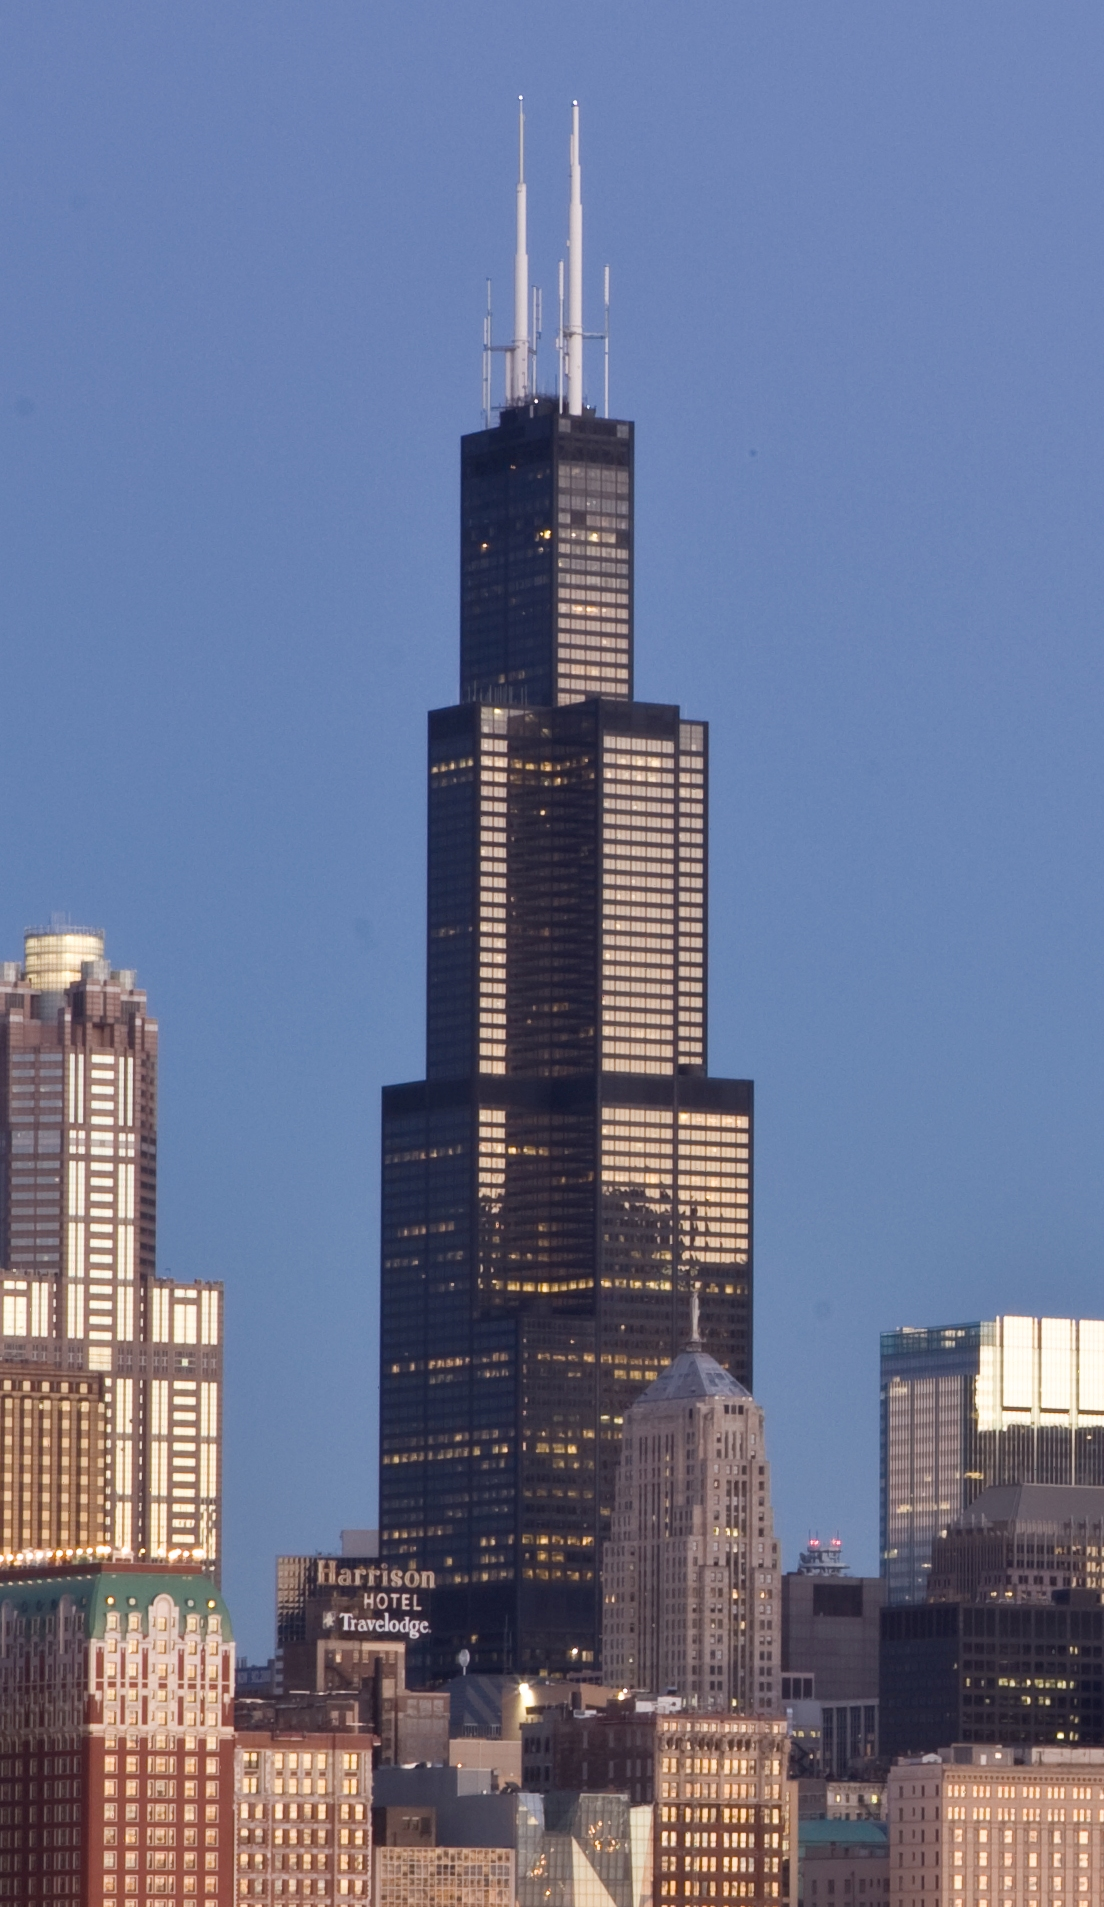 tower willis sears chicago building airlines united tallest illinois towers architecture sun times headquarters states usa construction formerly famous continental